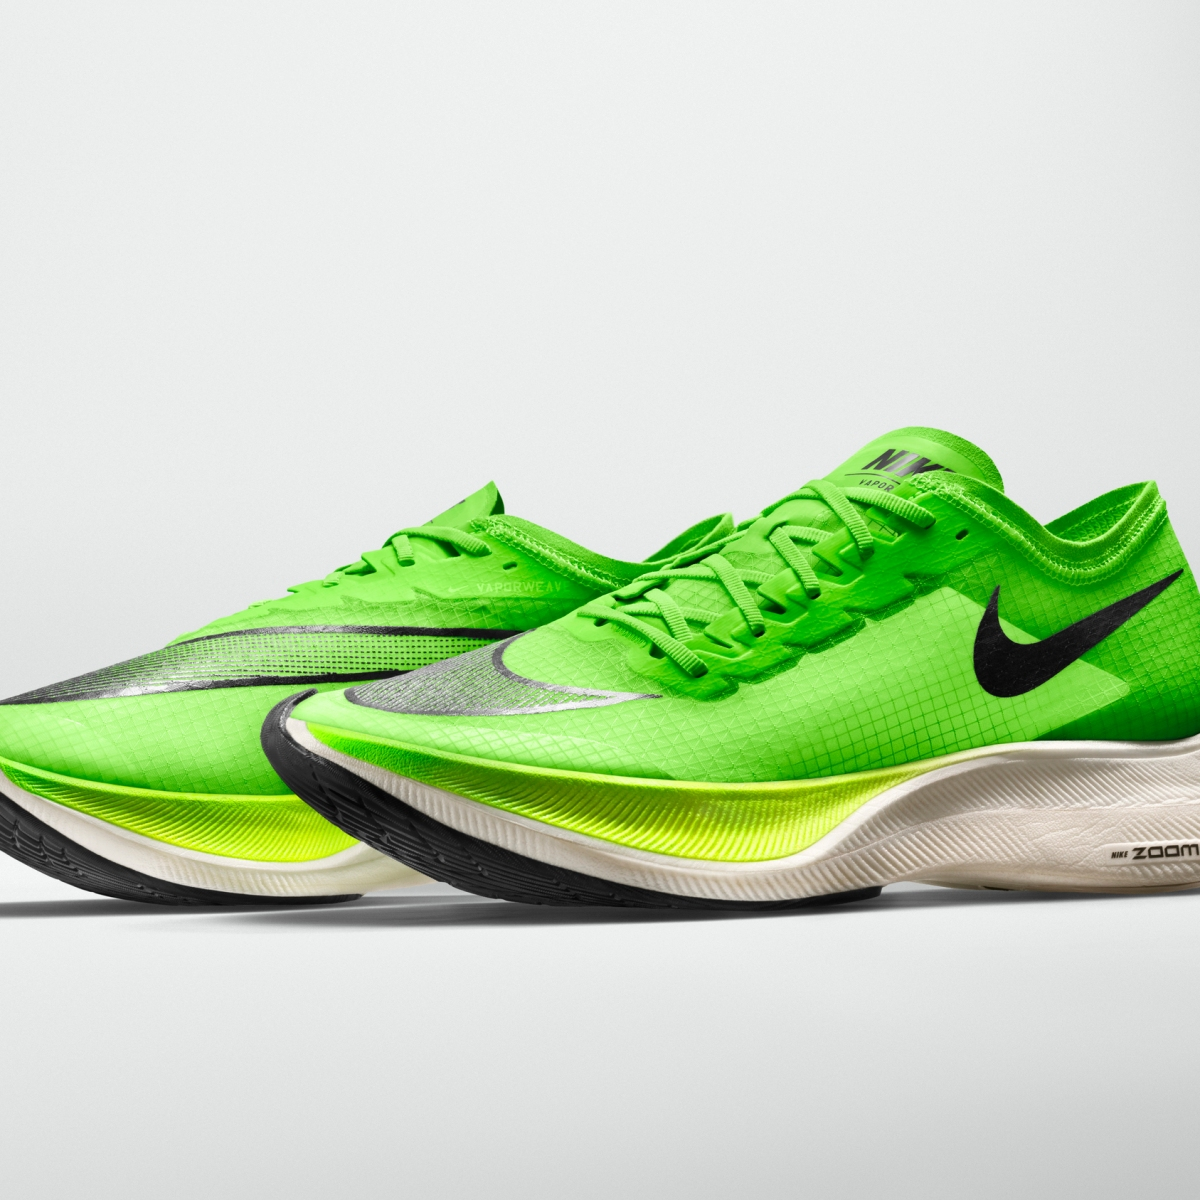 b8f73e1ec283 Nike Unveils the New ZoomX Vaporfly NEXT% Running Shoes